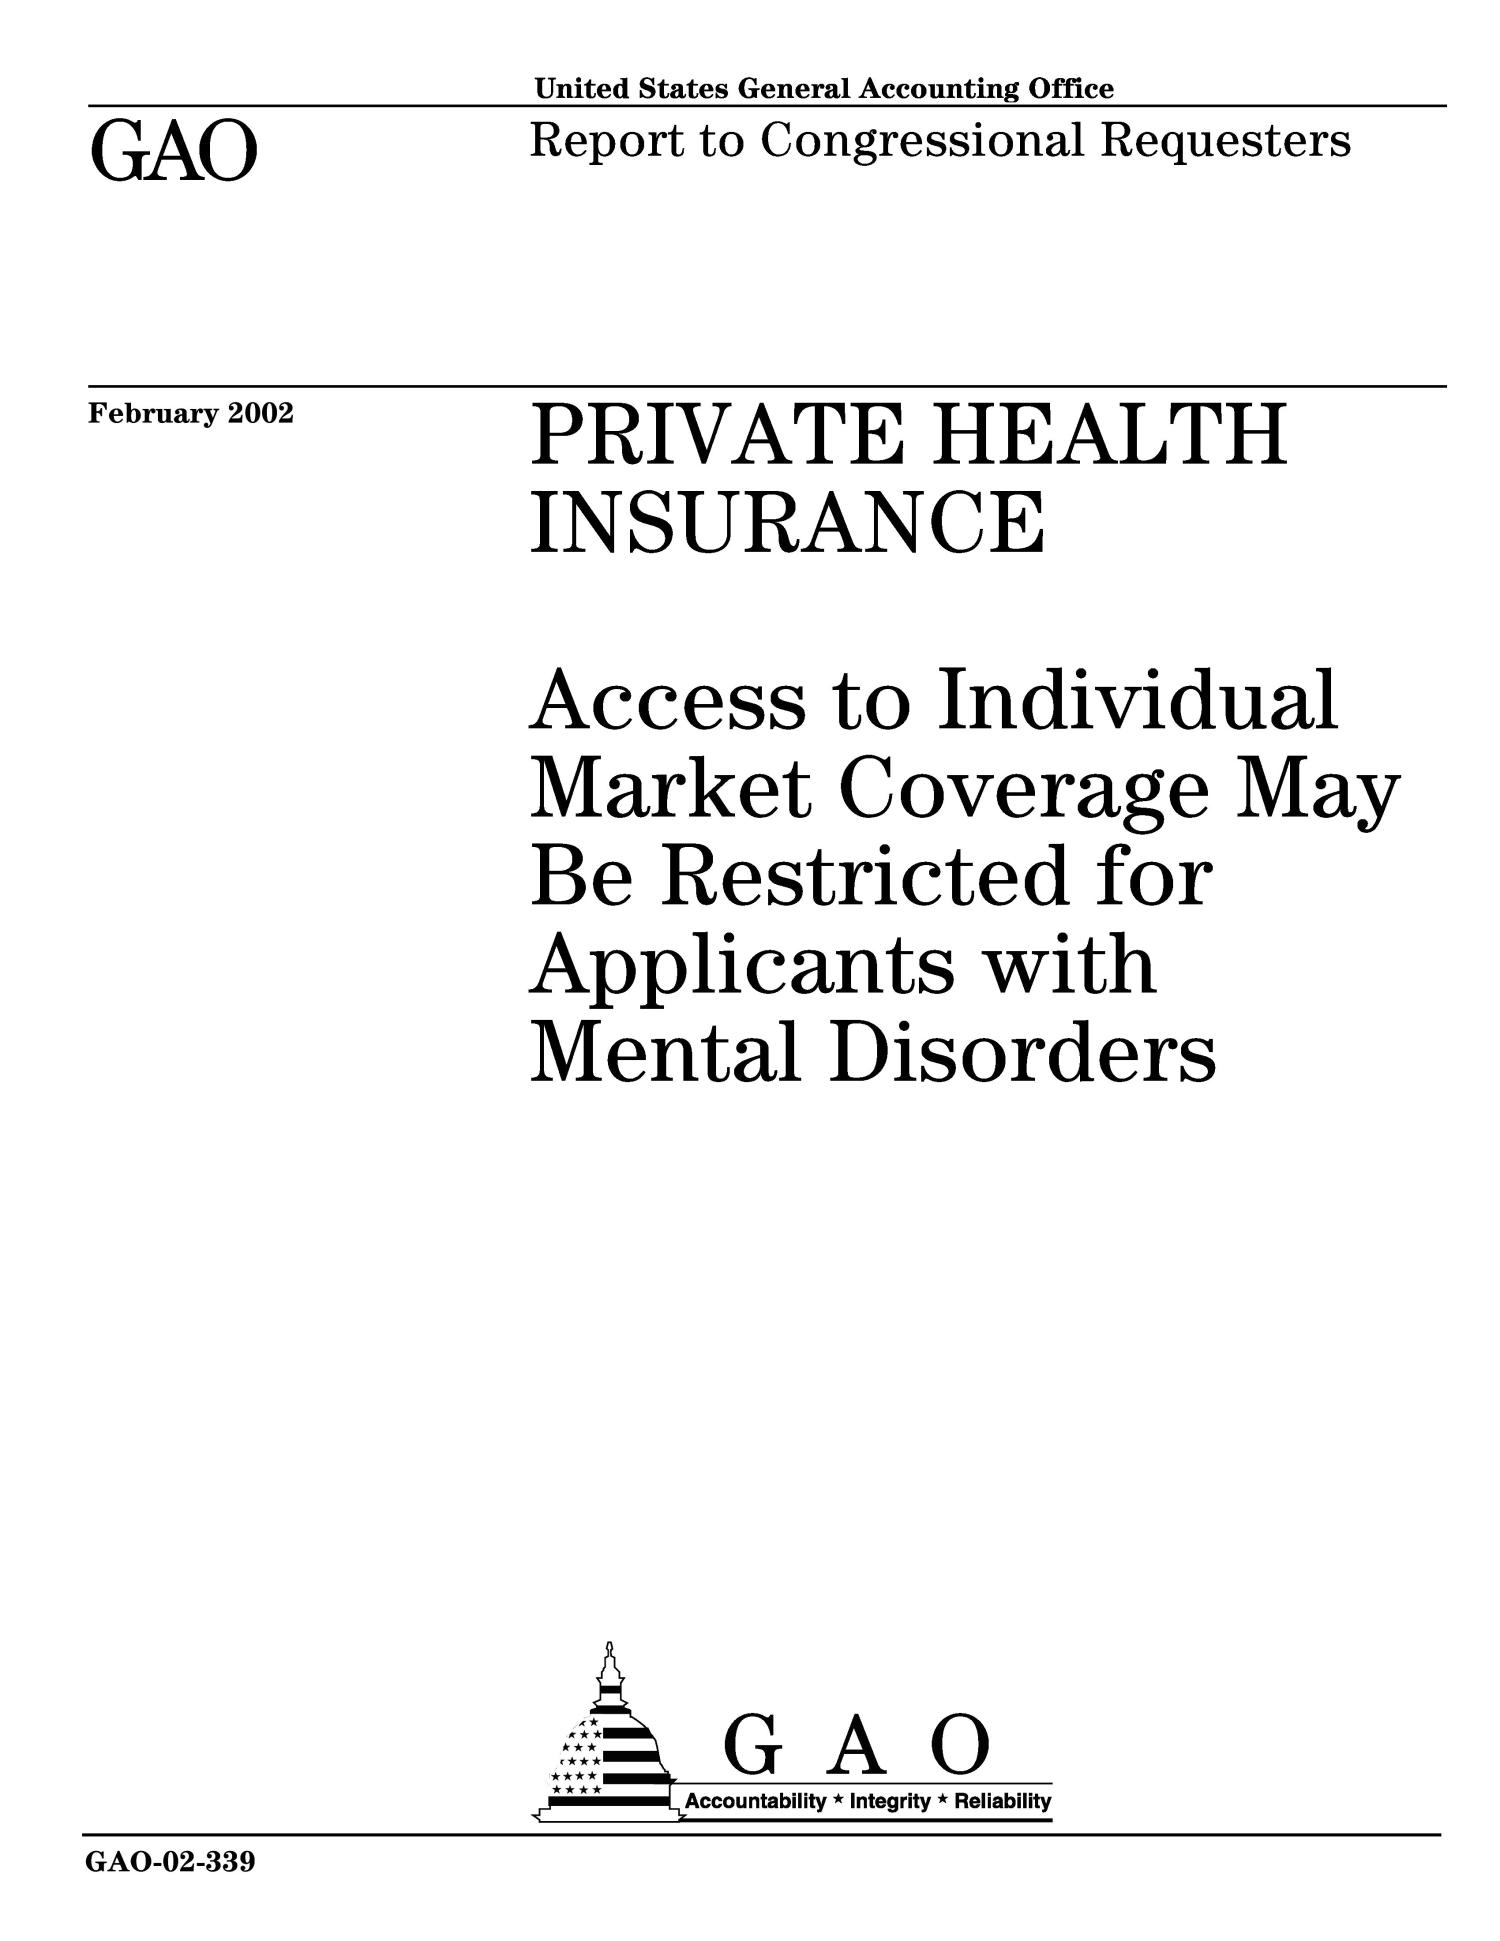 Private Health Insurance: Access to Individual Market Coverage May Be Restricted for Applicants with Mental Disorders                                                                                                      [Sequence #]: 1 of 32